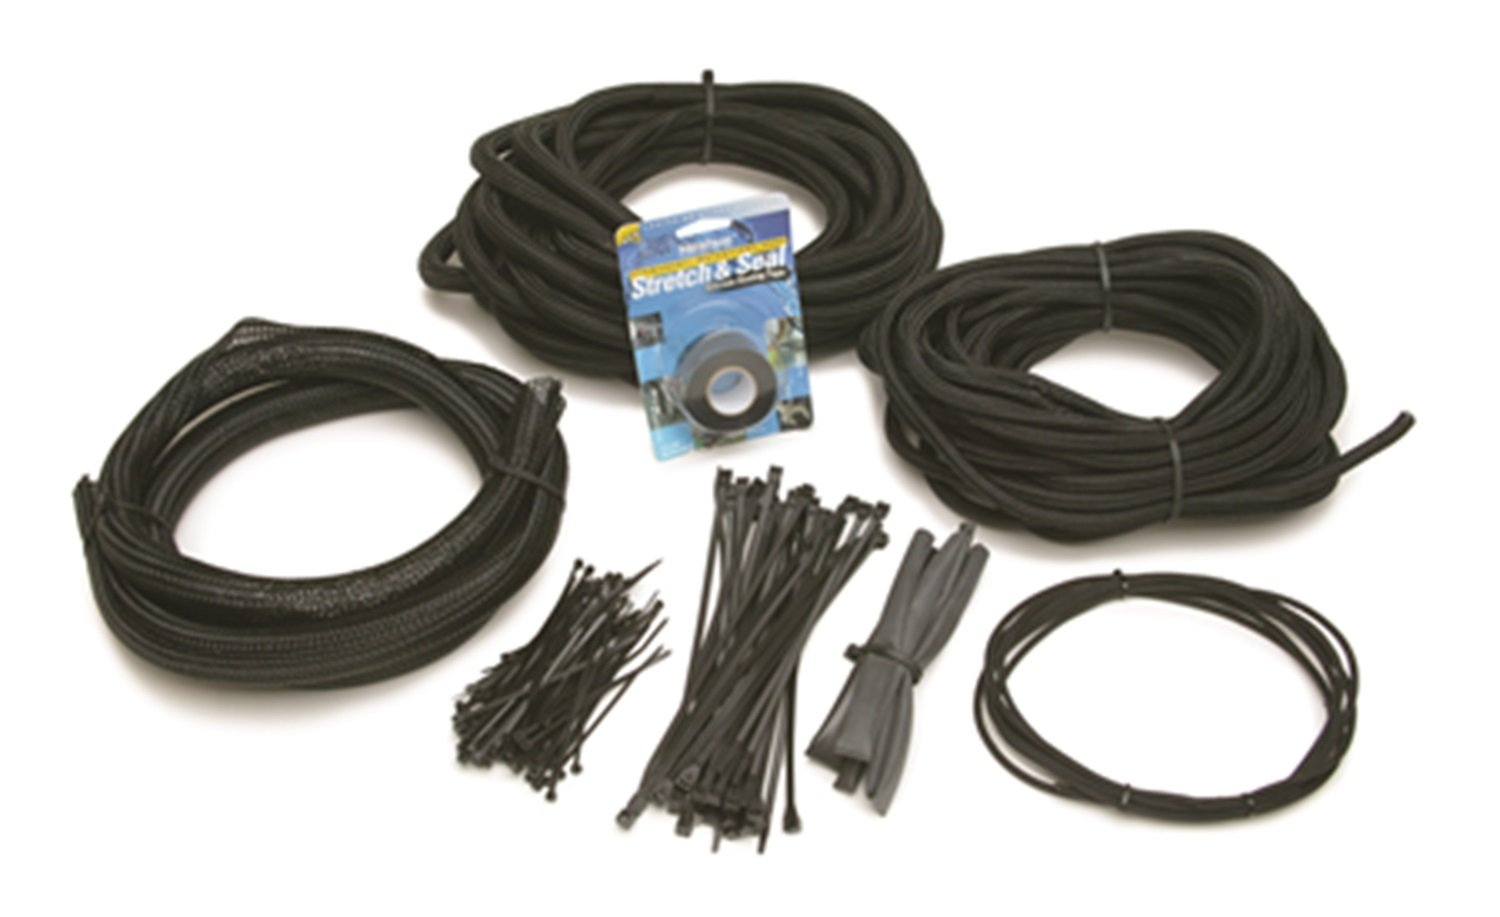 61KfhP ZlhL._SL1500_ amazon com painless wiring 70920 power braid chassis kit automotive painless wire harness at bayanpartner.co